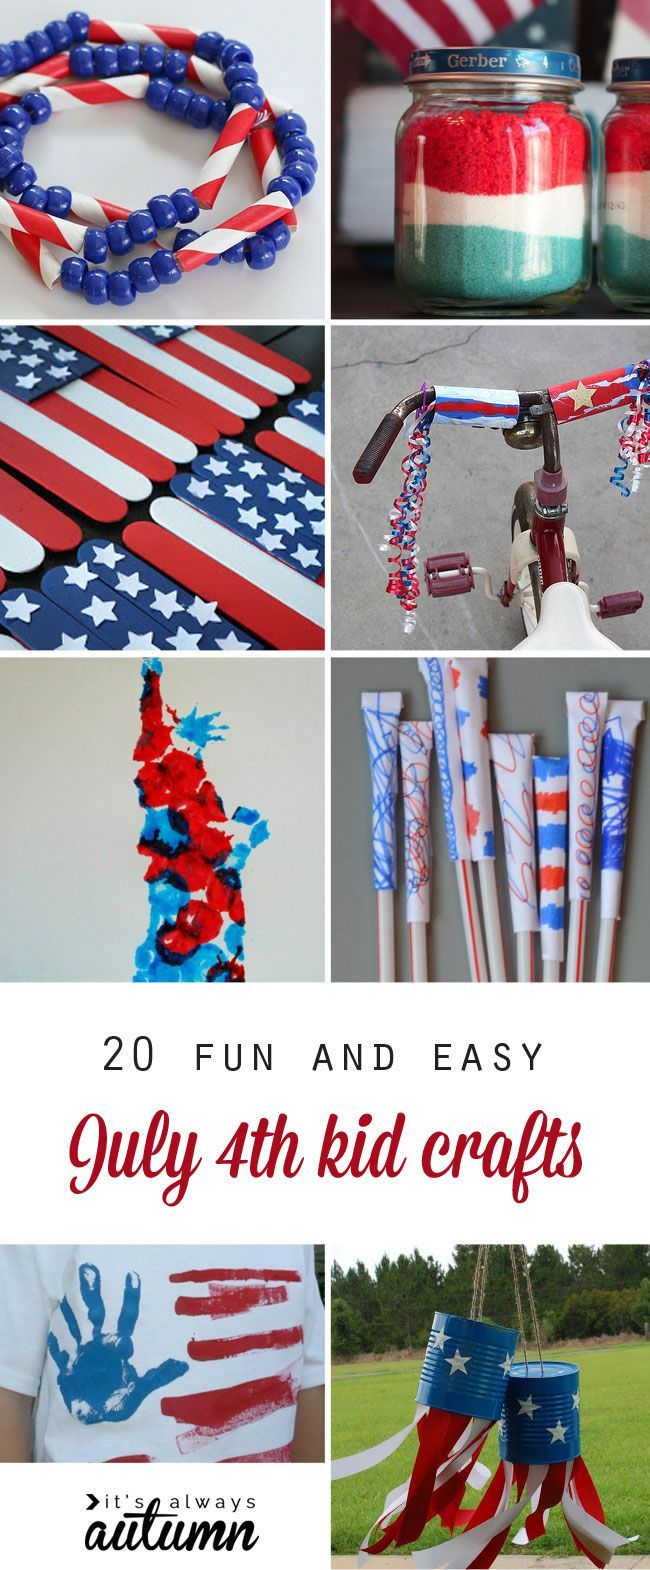 july 4th crafts toddlers